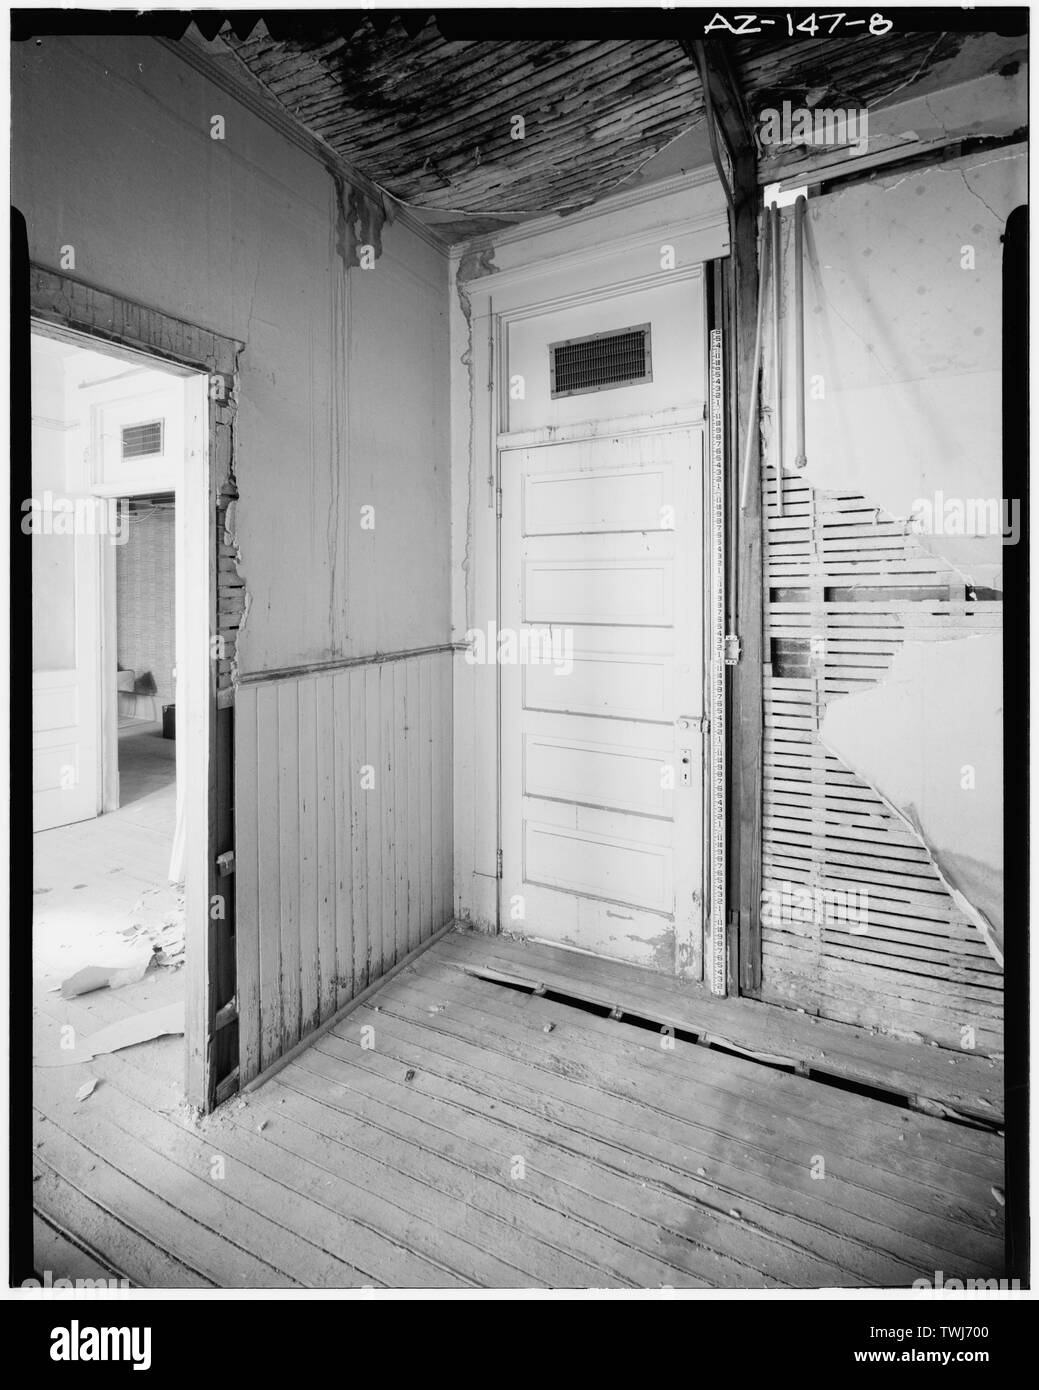 Several of the rental rooms are joined by doors, and each room is accessed from the corridor. Originally, the transoms were glazed. When a central heating-cooling system was installed, the transoms were modified to accommodate air grilles that are supplied by a duct located in the corridor. The five-panel door and wood wainscot are original features. However, the wainscot does not occur in every room. The lath and plaster partitions and the wood flooring are typical of the original construction. Credit GADA-MRM. - Stroud Building, 31-33 North Central Avenue, Phoenix, Maricopa County, AZ - Stock Image